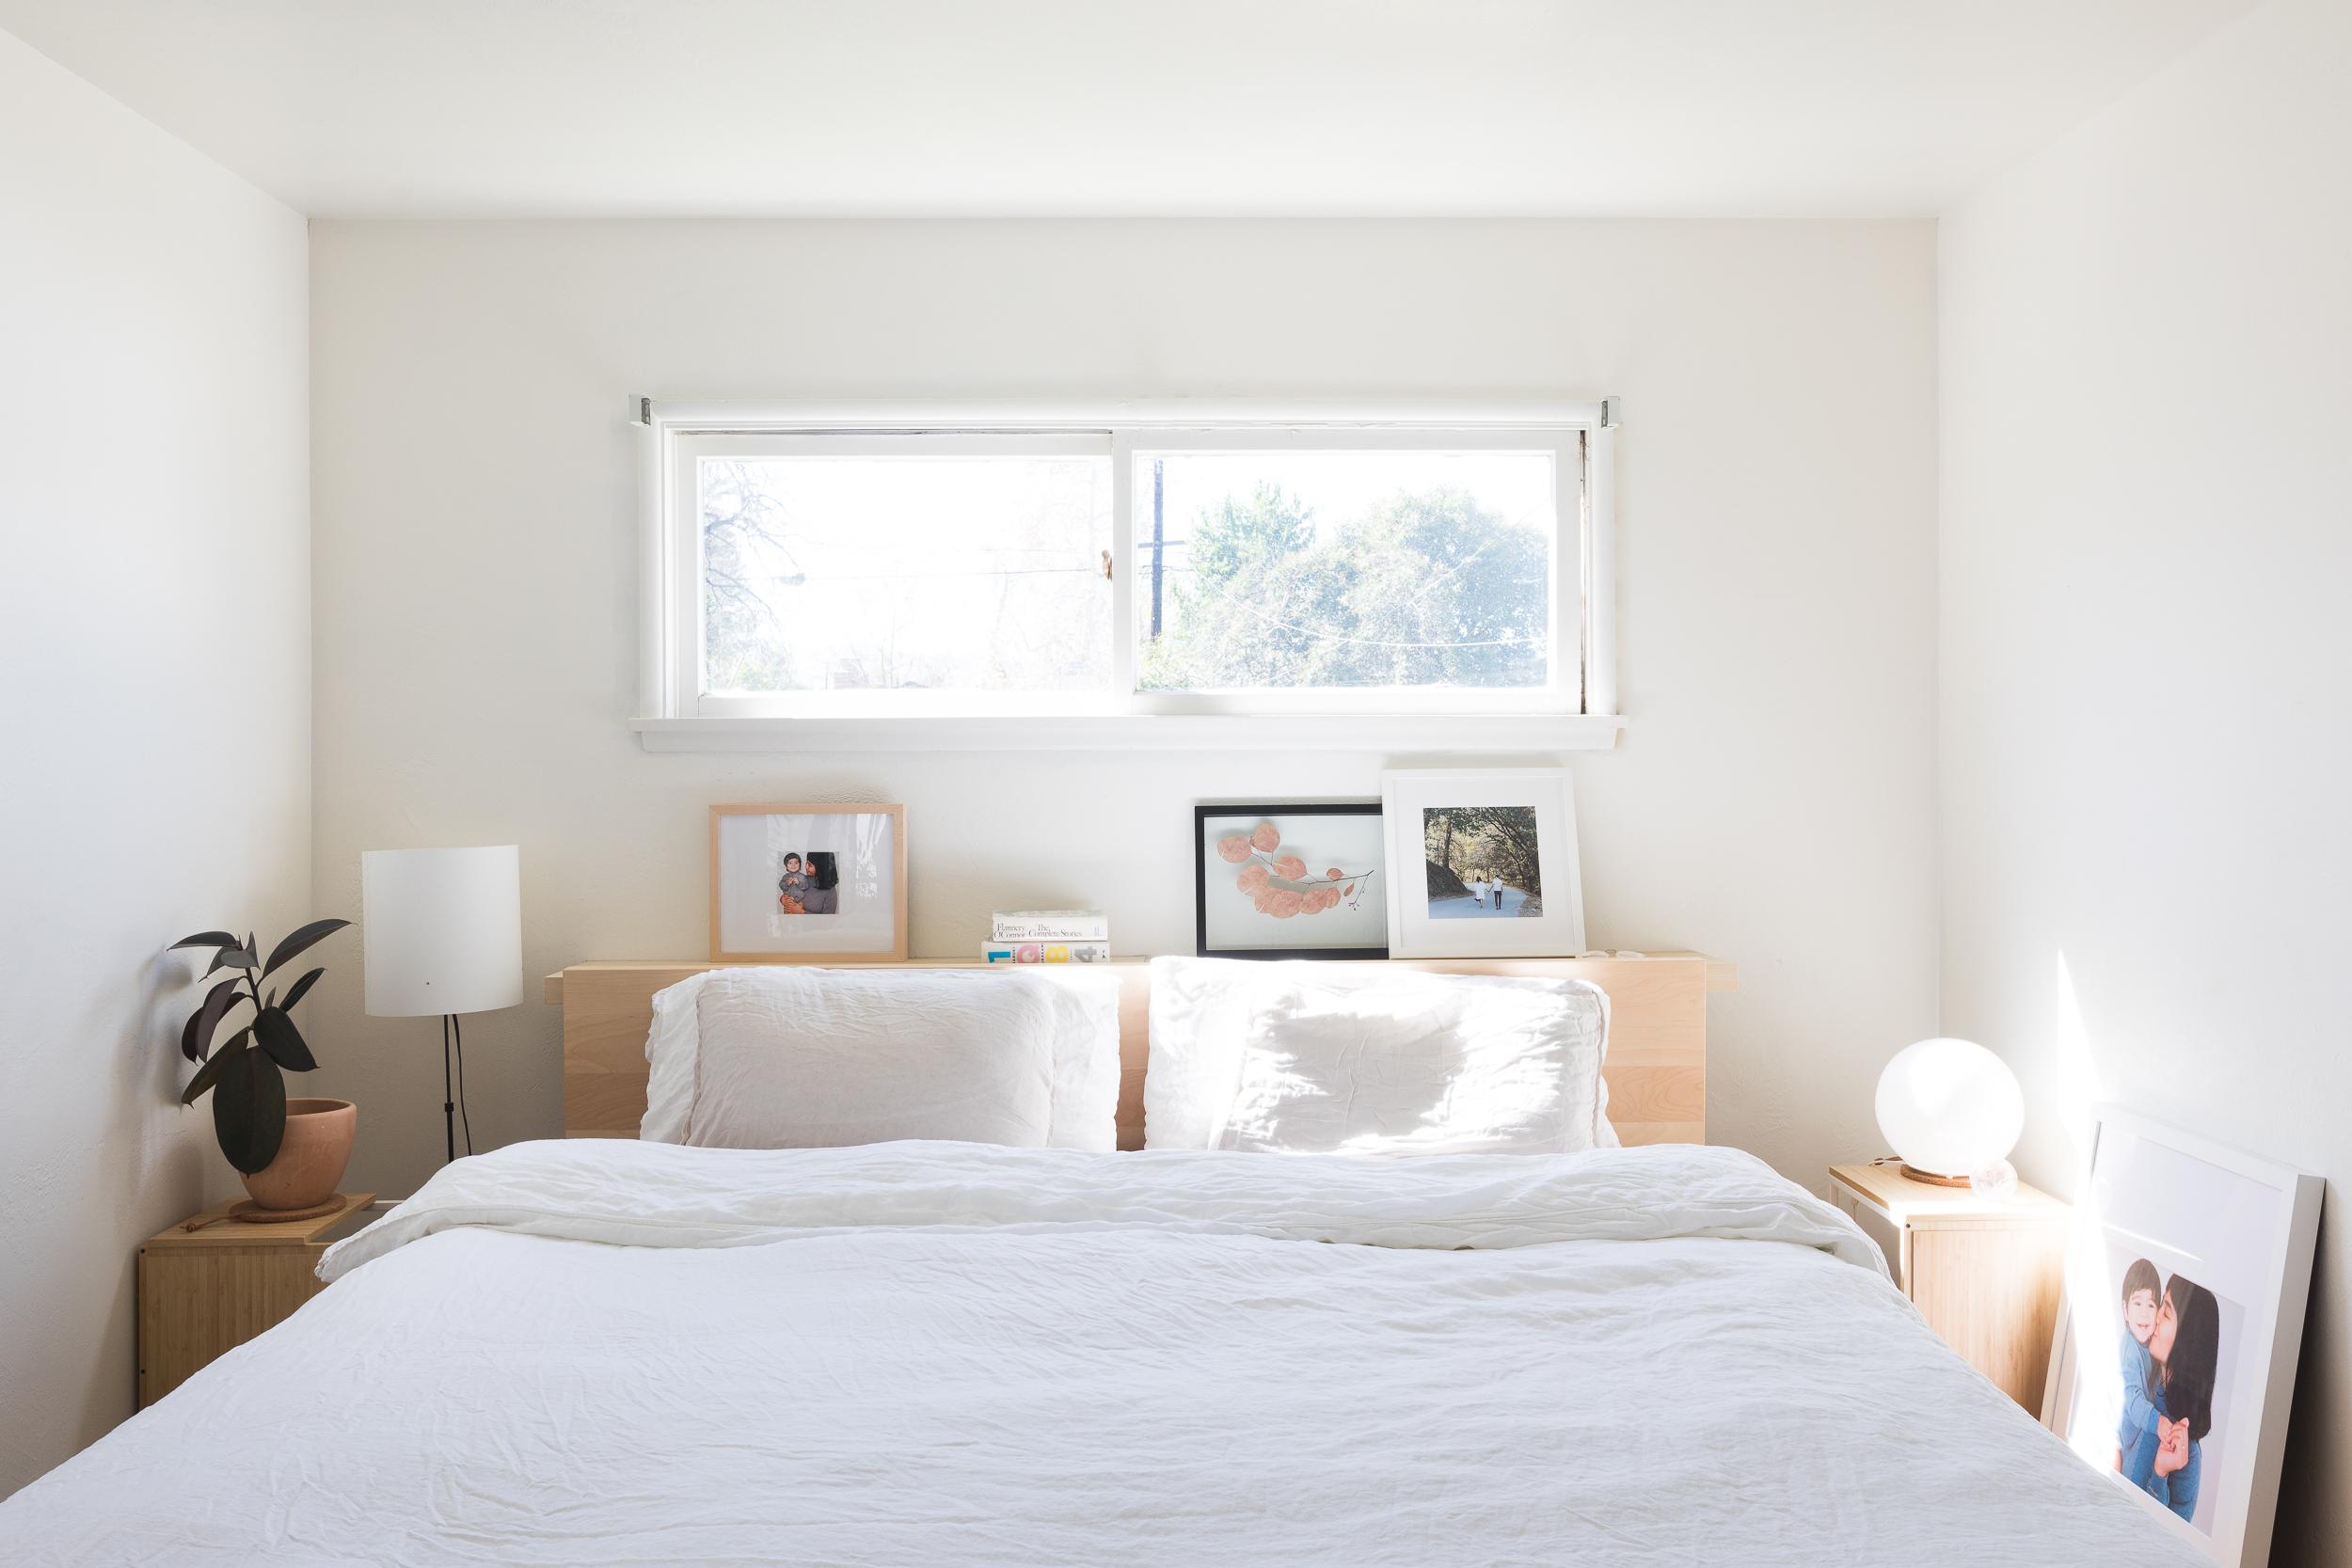 The 15 Best Bedroom Decorating Tips, According to Apartment Therapy